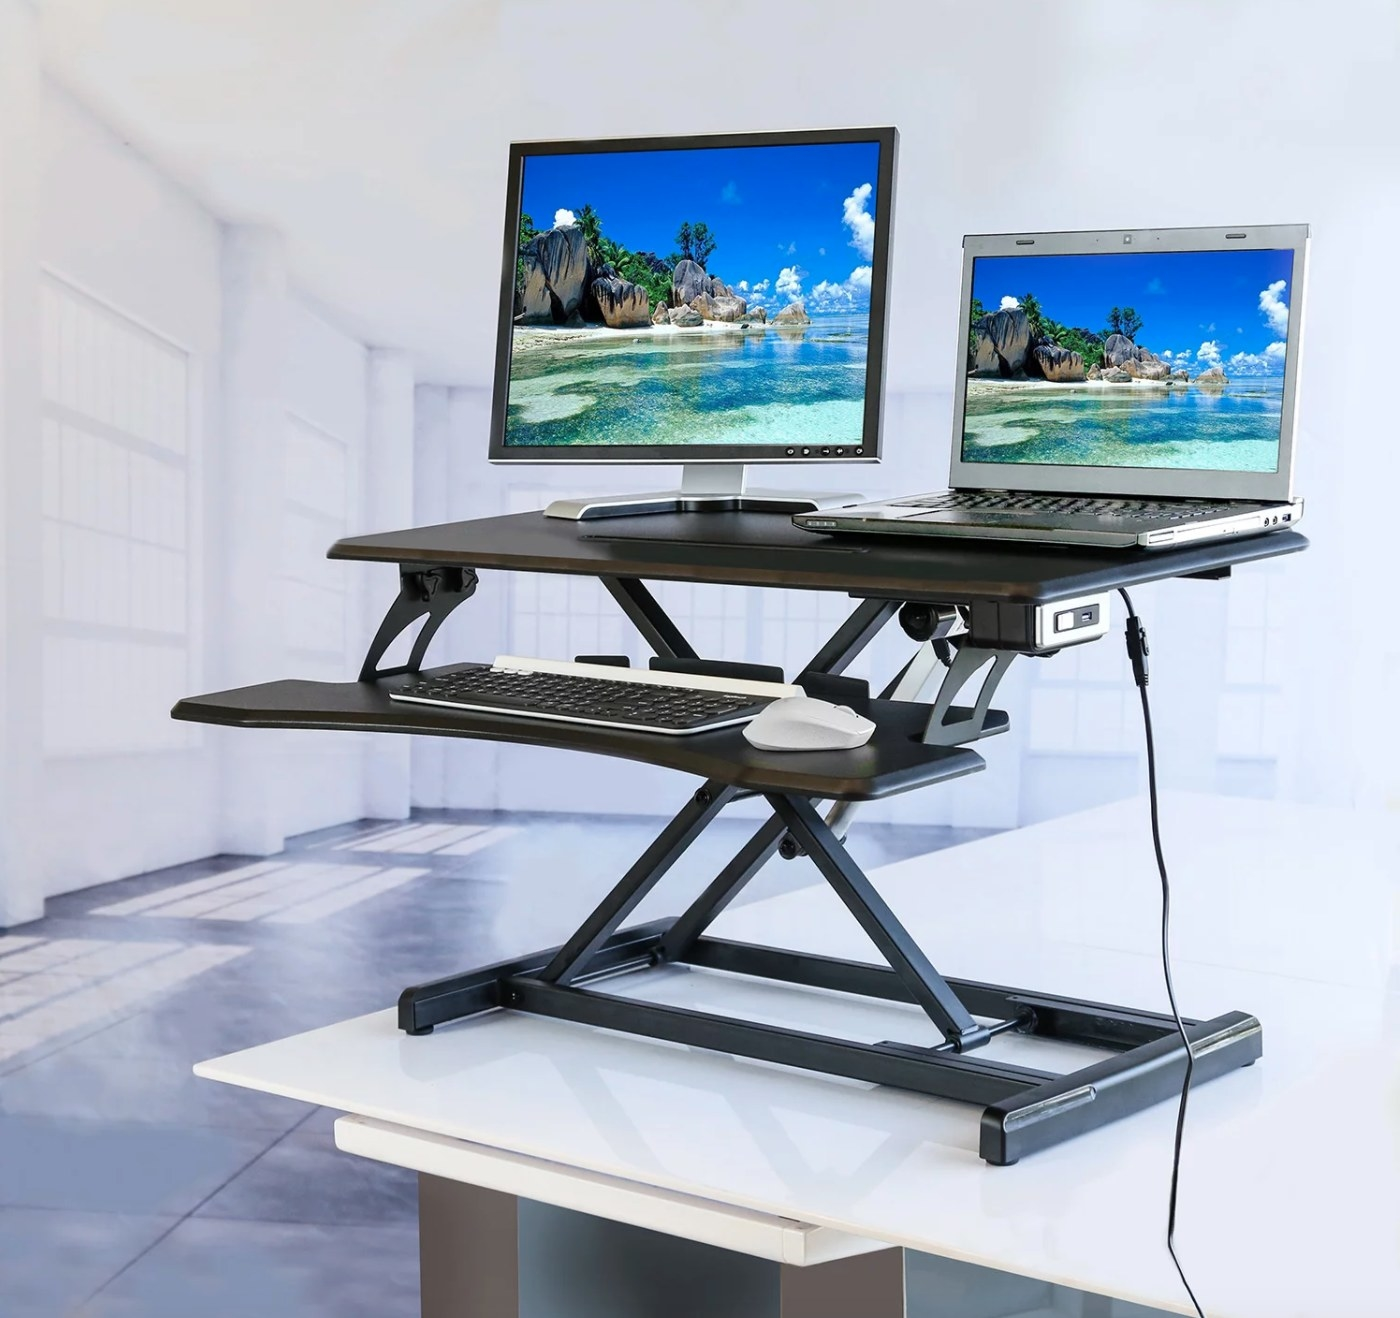 The electric standing desk converter